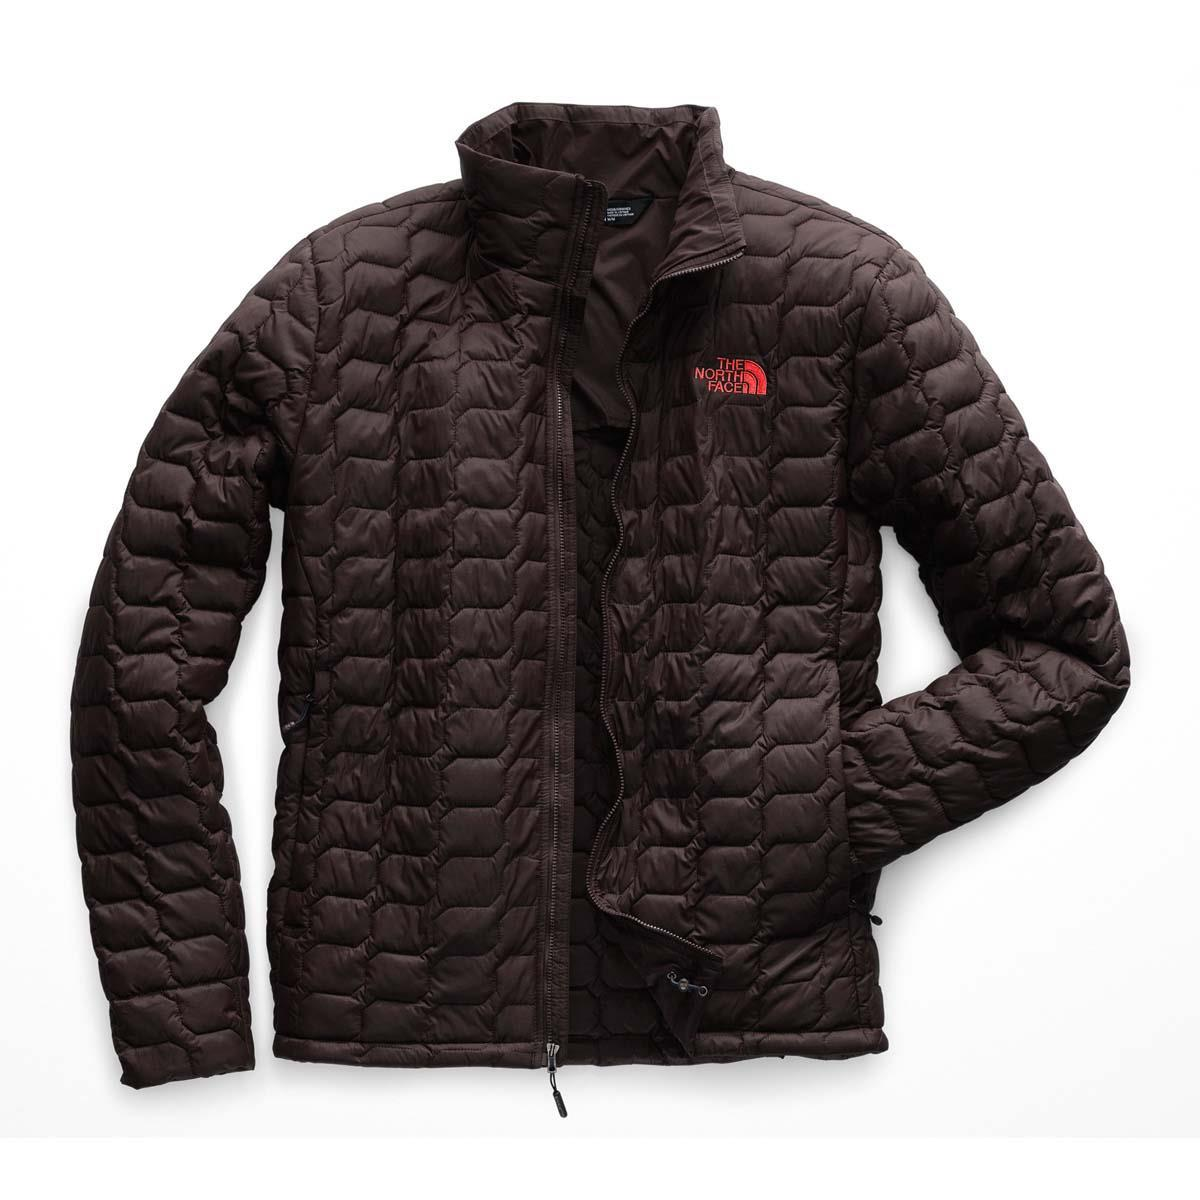 8c669e827 The North Face Thermoball Jacket - Men's